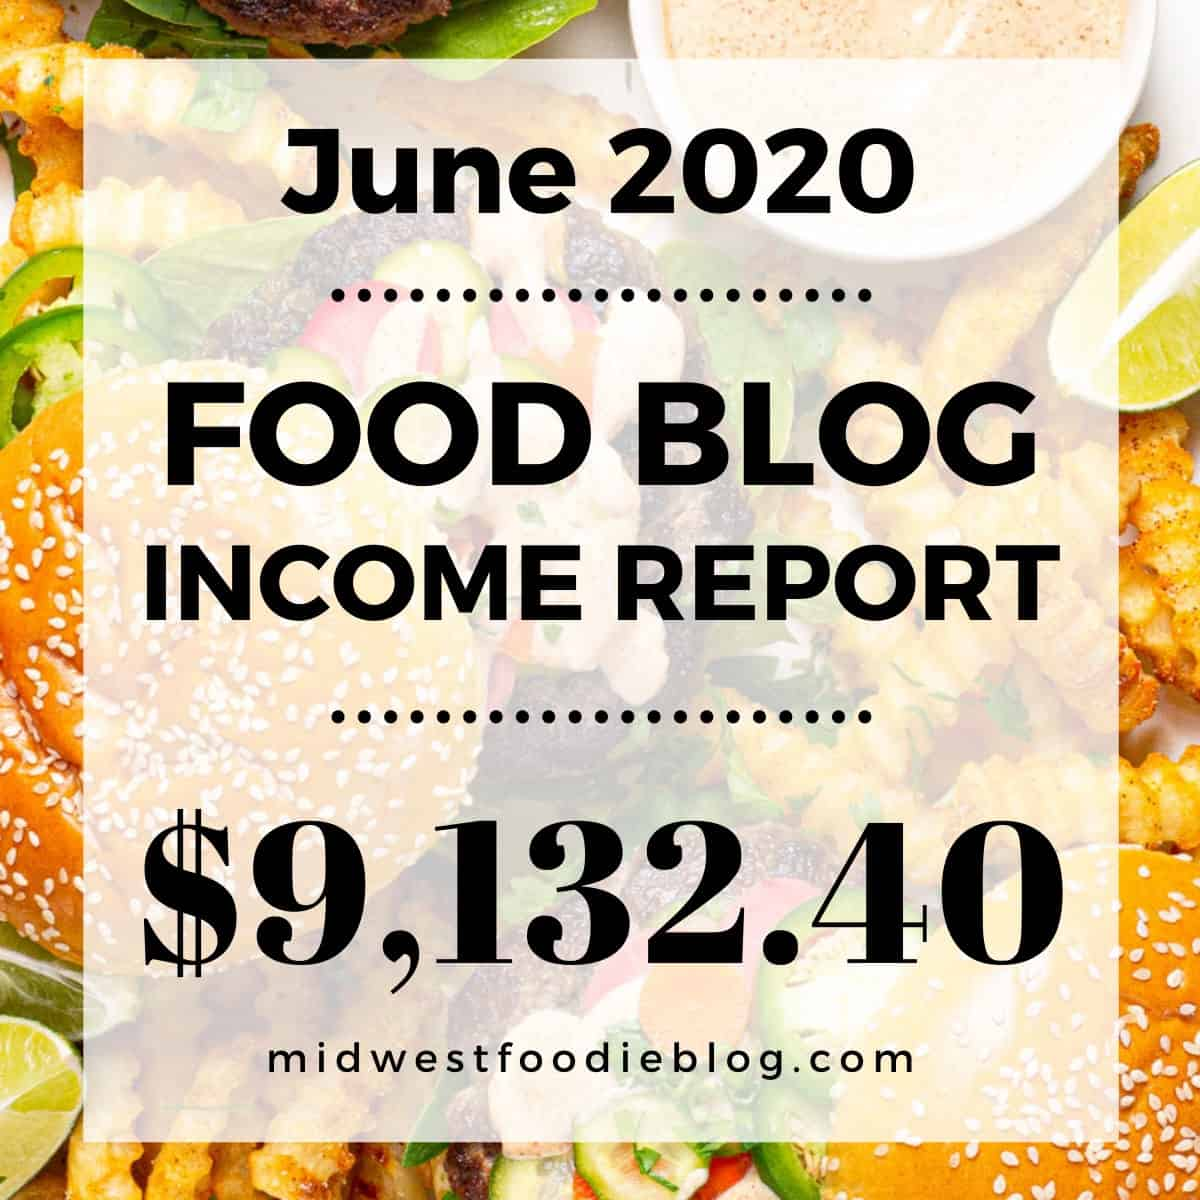 Stylized text stating food blog income report June 2020 $9132.40